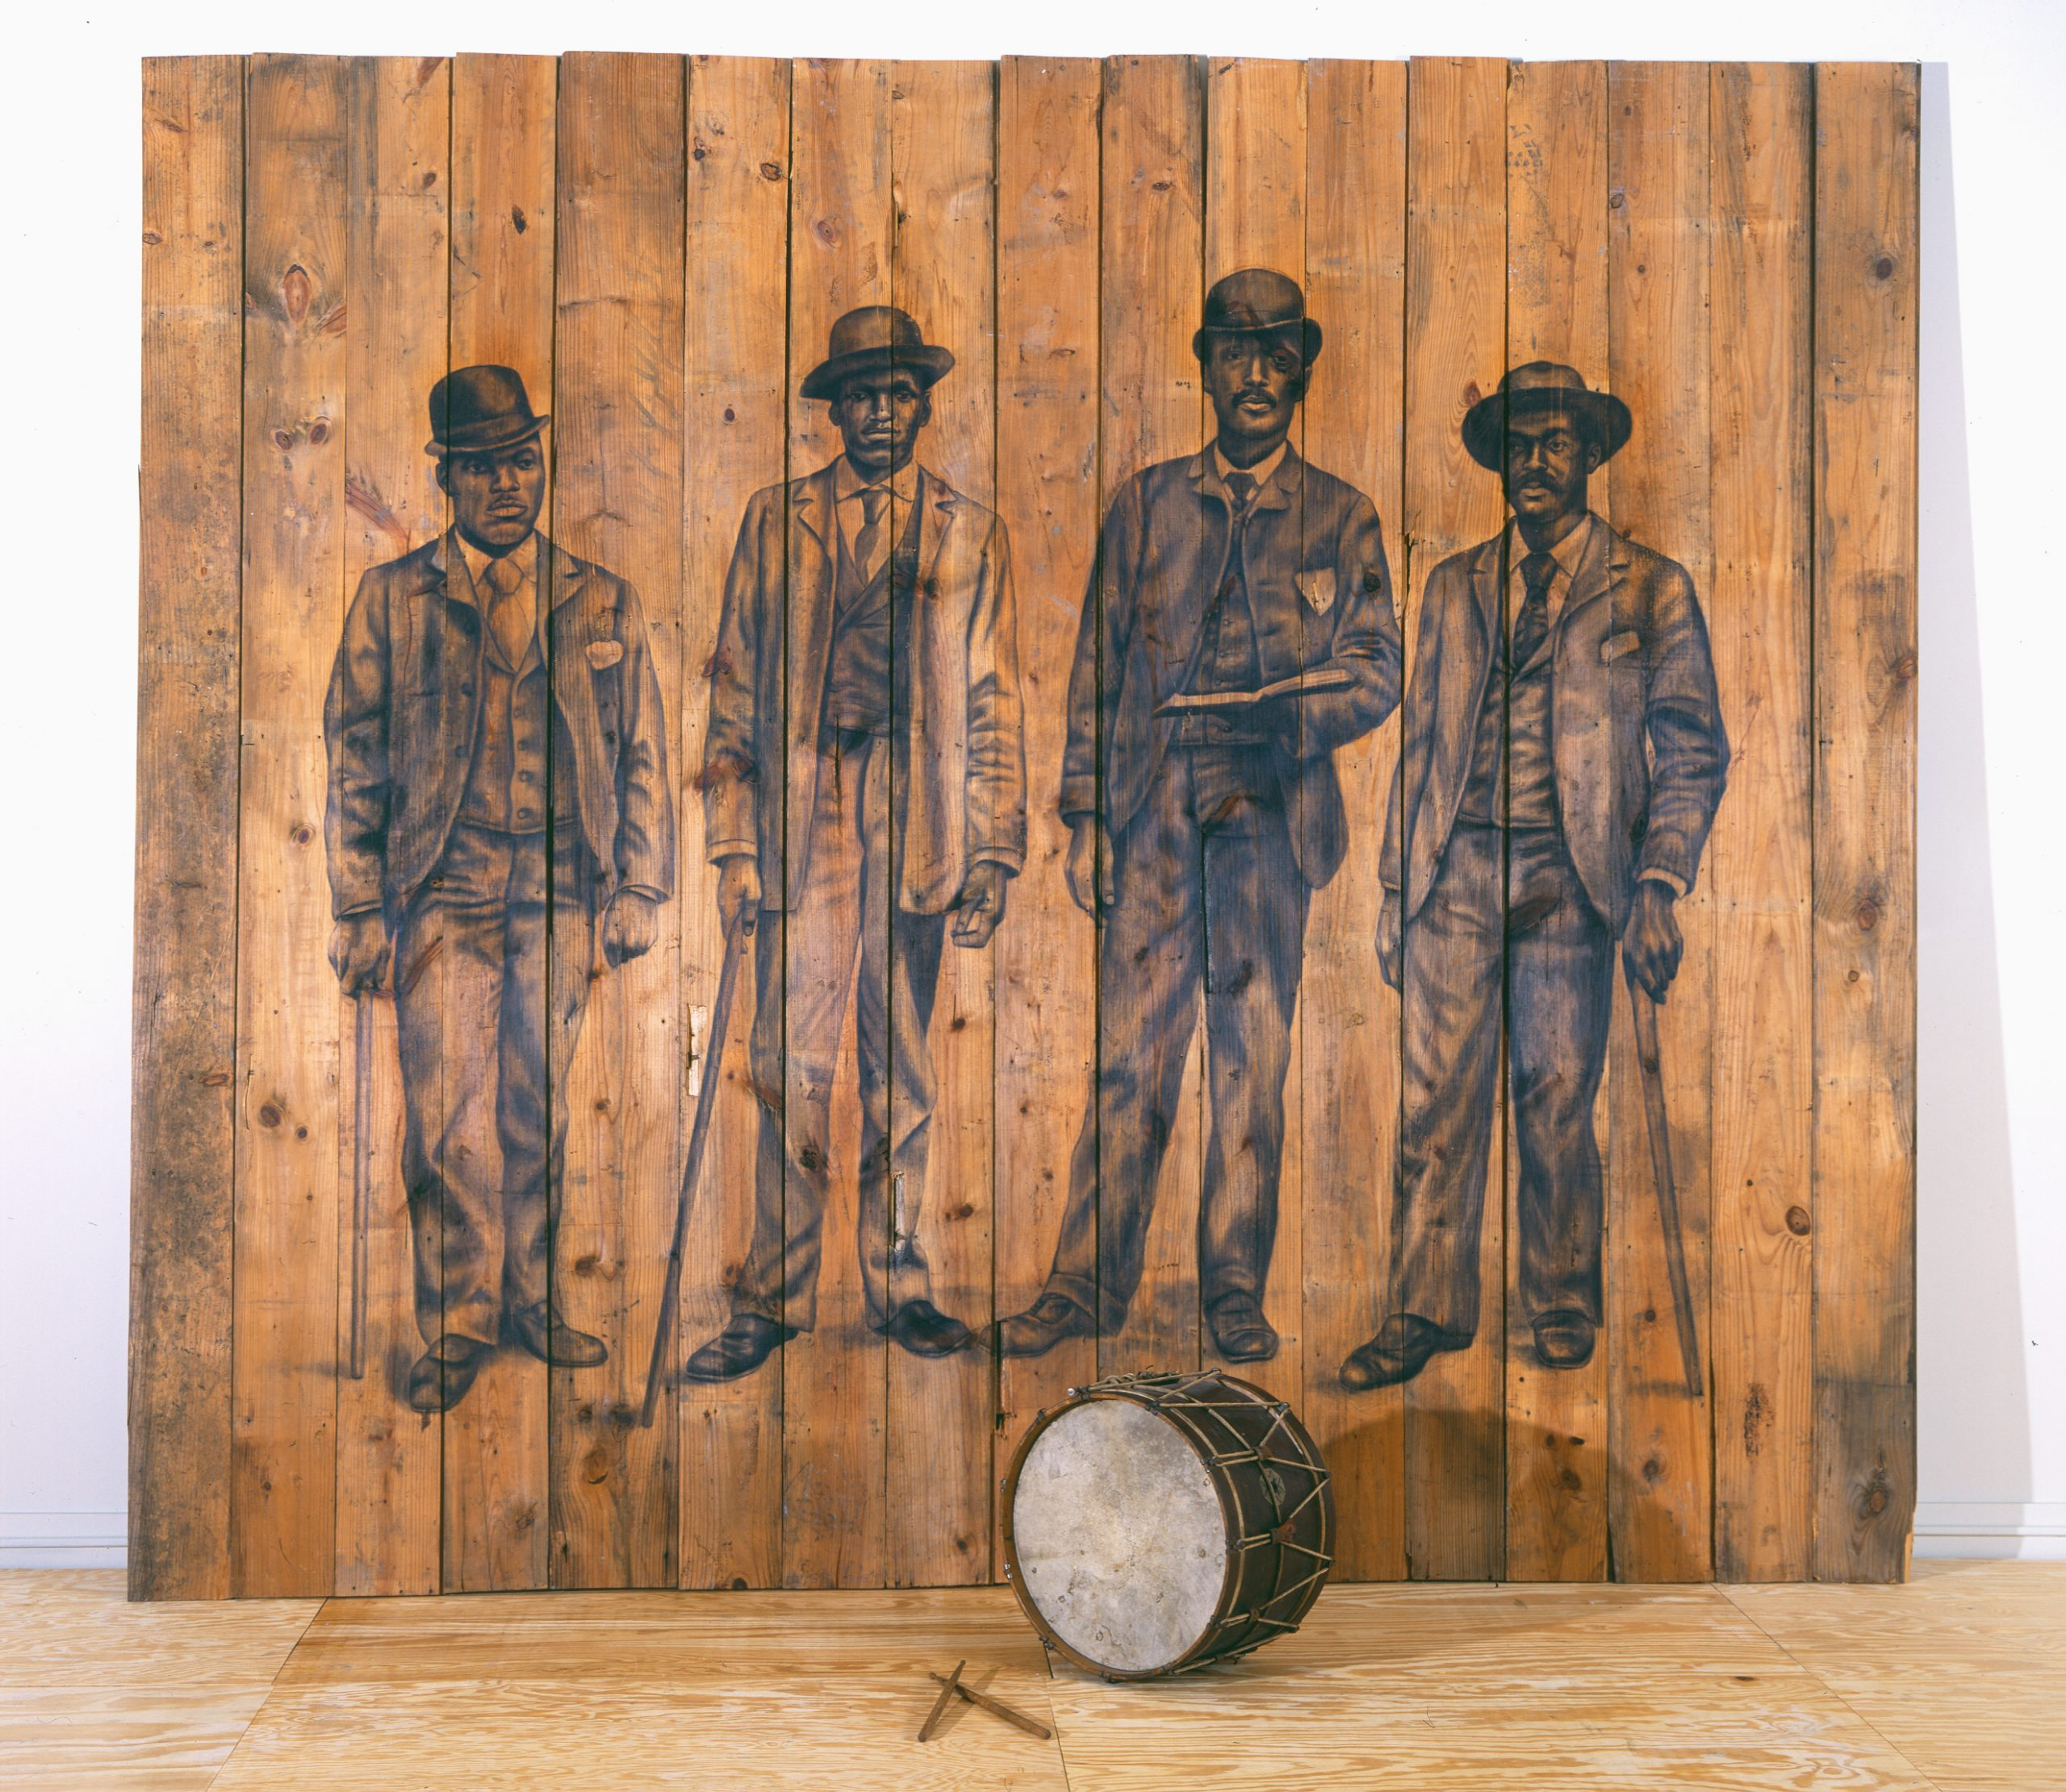 Charcoal drawing of four besuited Black men on a wooden panel with an old drum and drumsticks.